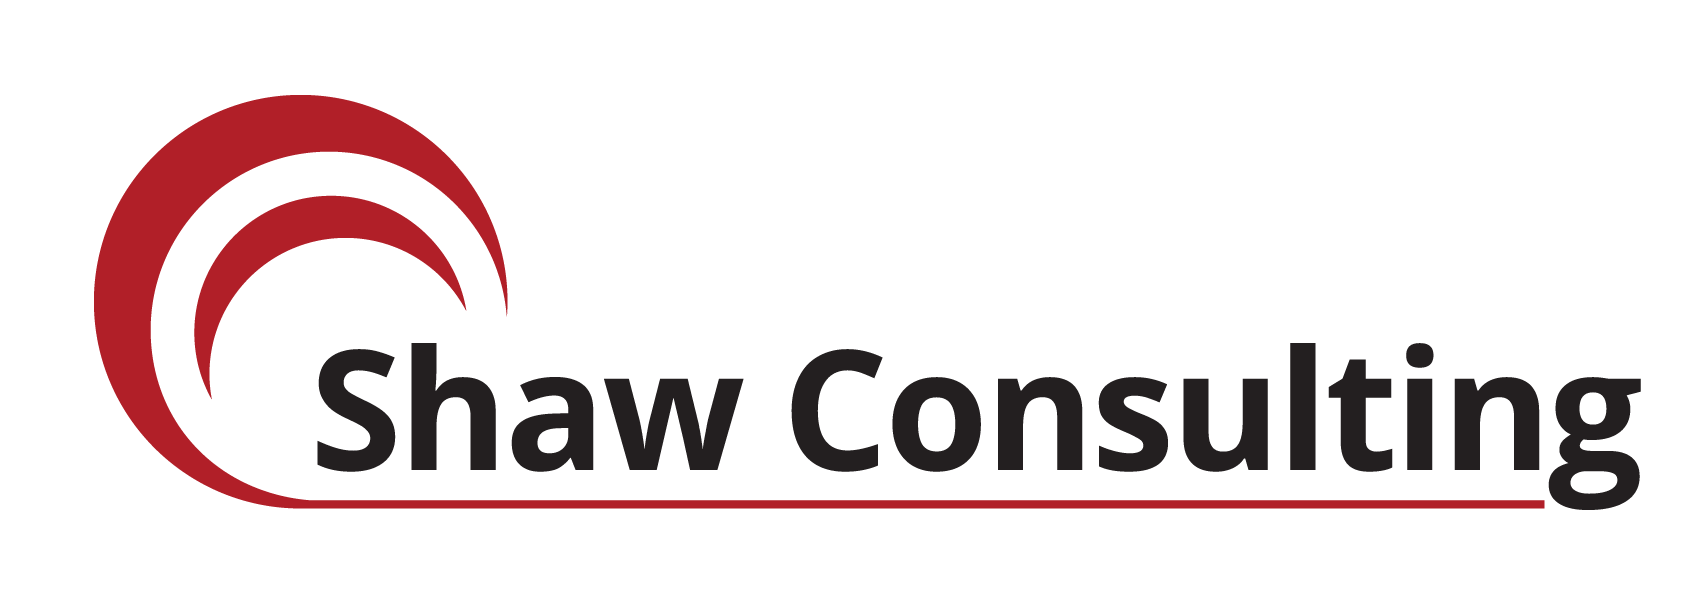 Shaw Consulting